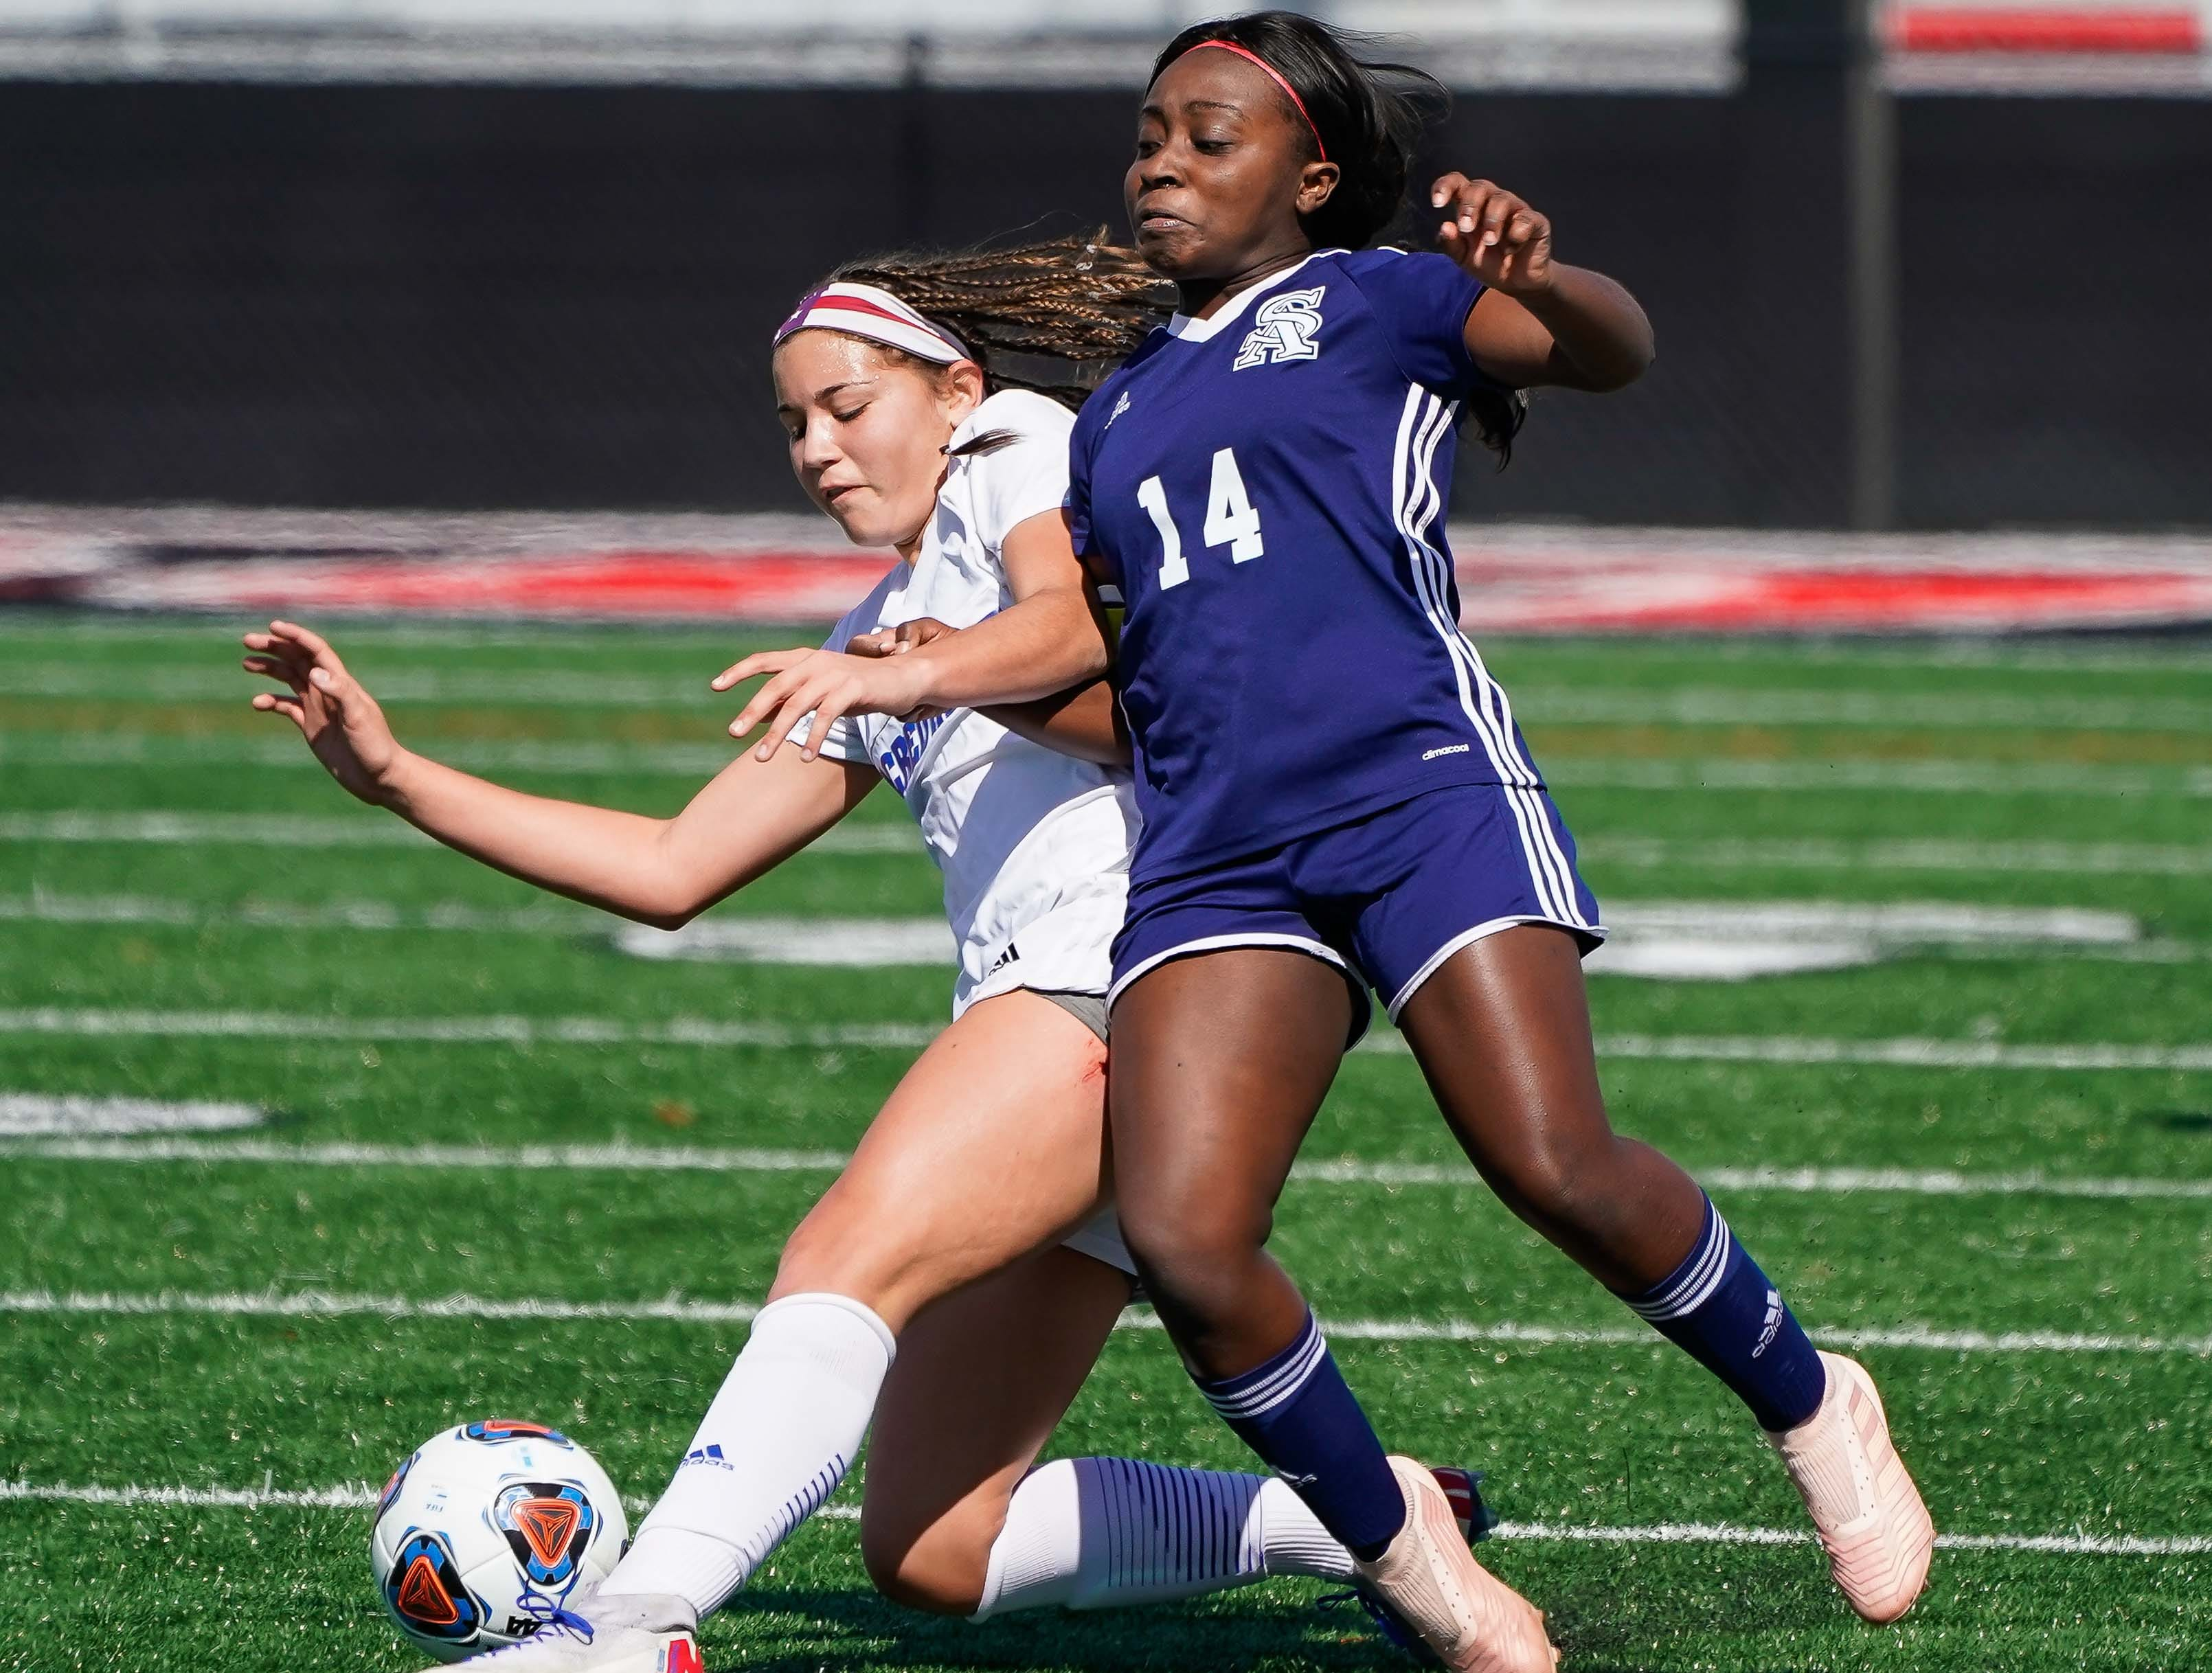 St. Andrew's Toni Oluwatade (14) tries to stop Sacred Heart's Graciella Falla (10) during the MHSAA 1A,2A,3A  GIrls Soccer Championships held at Brandon High School in Brandon, MS, Saturday February 9, 2019.(Bob Smith-For The Clarion Ledger)